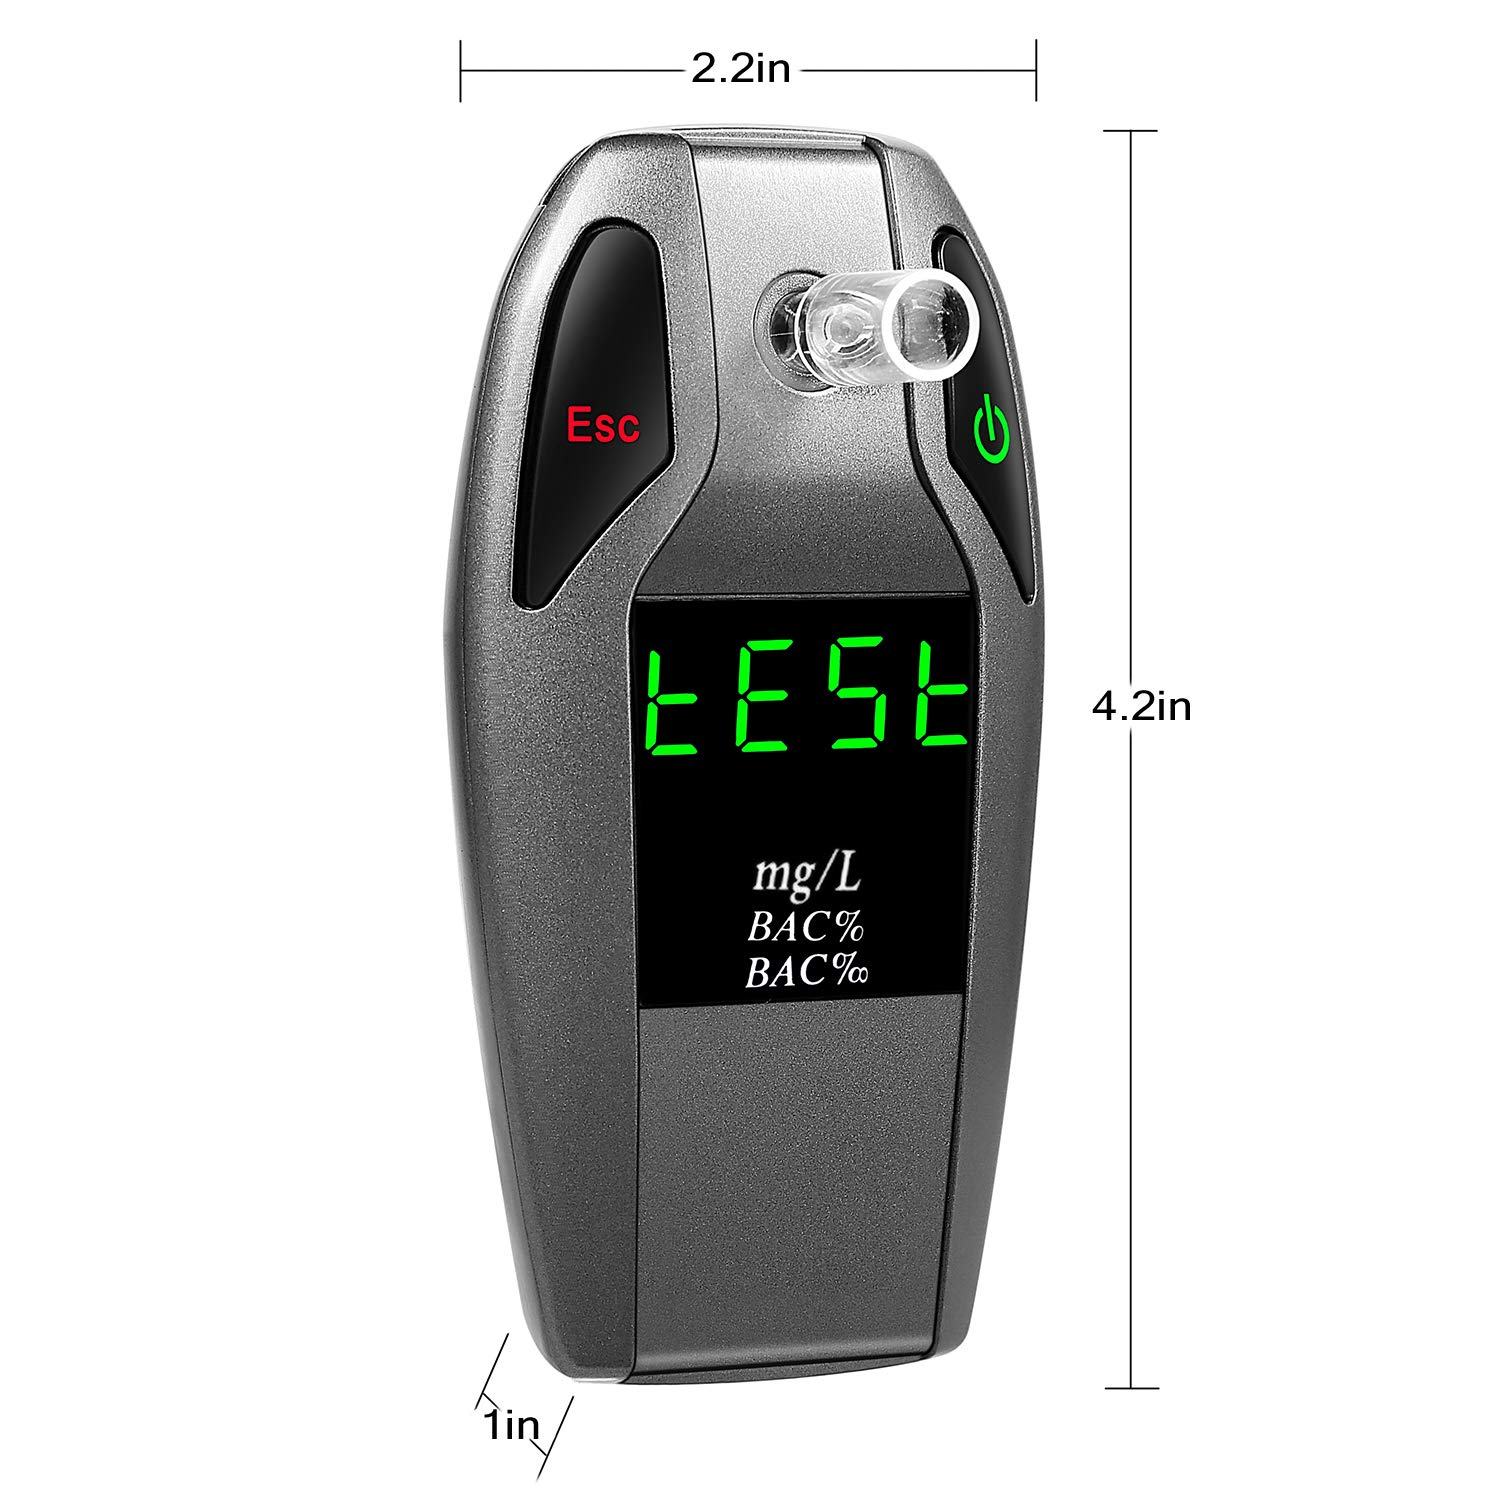 JASTEK Breathalyzer, [2019 New Version] Fuel Cell Sensor Digital Breath Alcohol Tester and Professional Grade Blood Alcohol Content Detector Made of Zinc Alloy by JASTEK (Image #4)